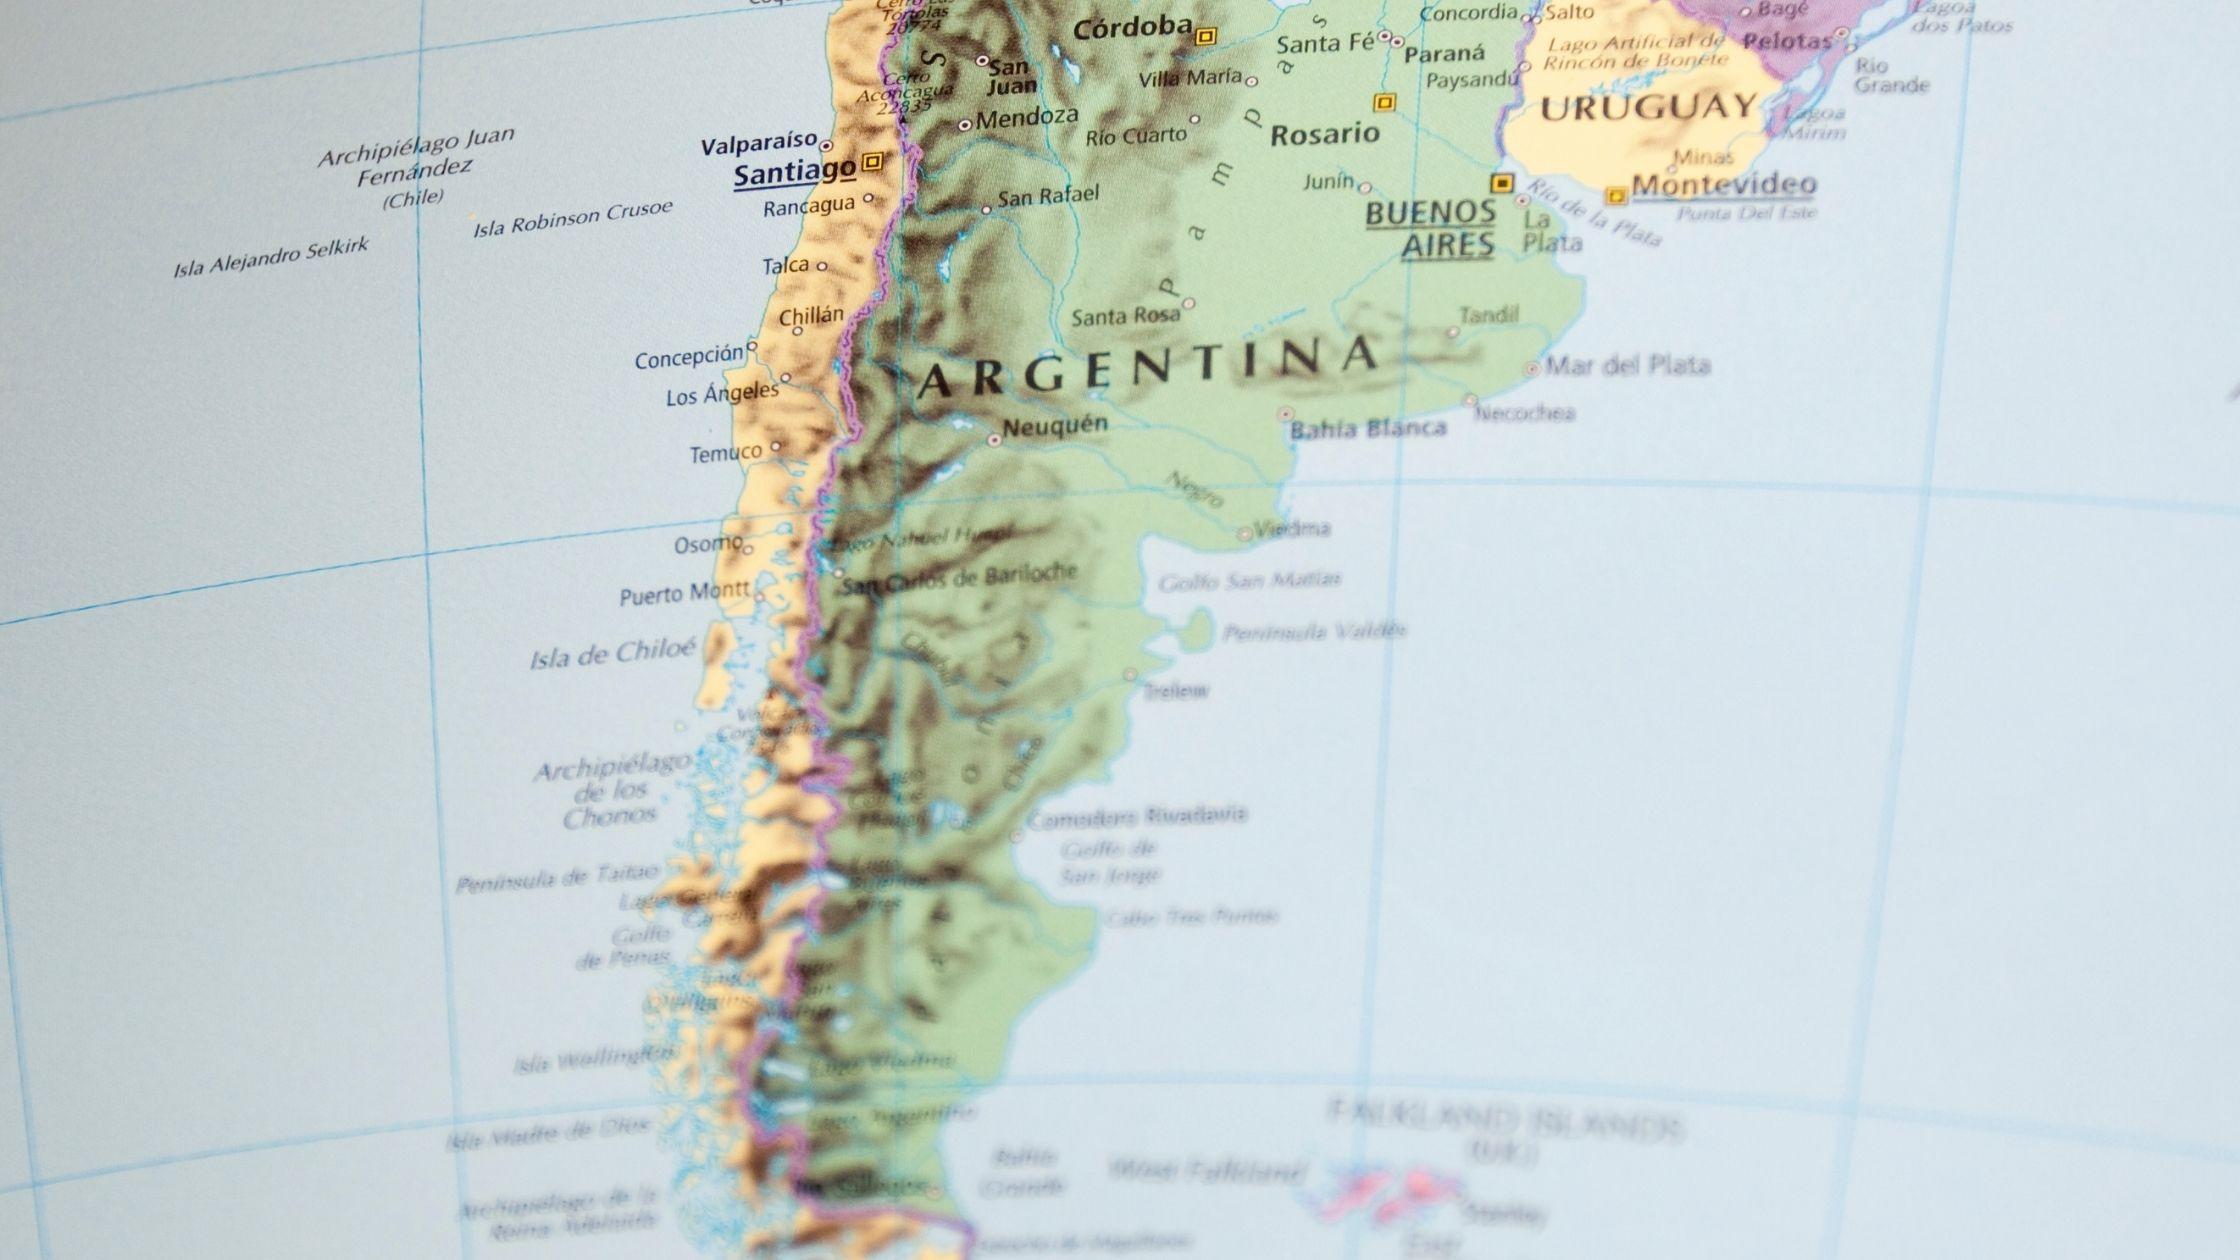 Magnitude 6.8 natural disaster  hits western Argentina